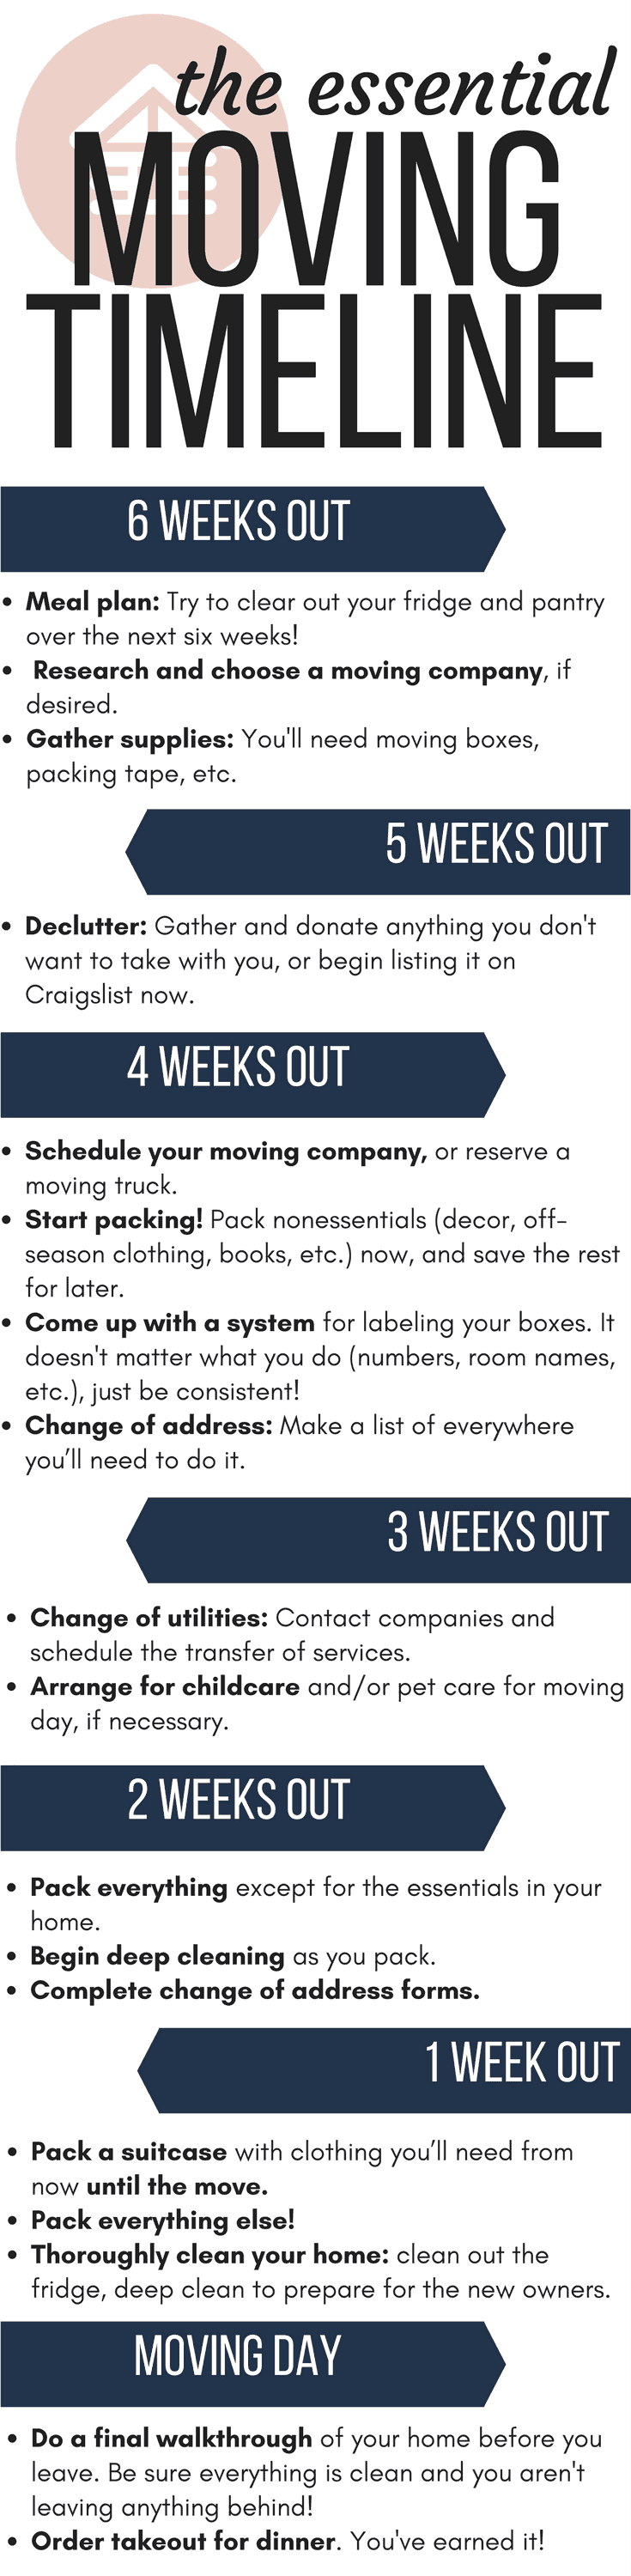 6 Week Moving Timeline and Checklist Love Renovations – Moving Checklist